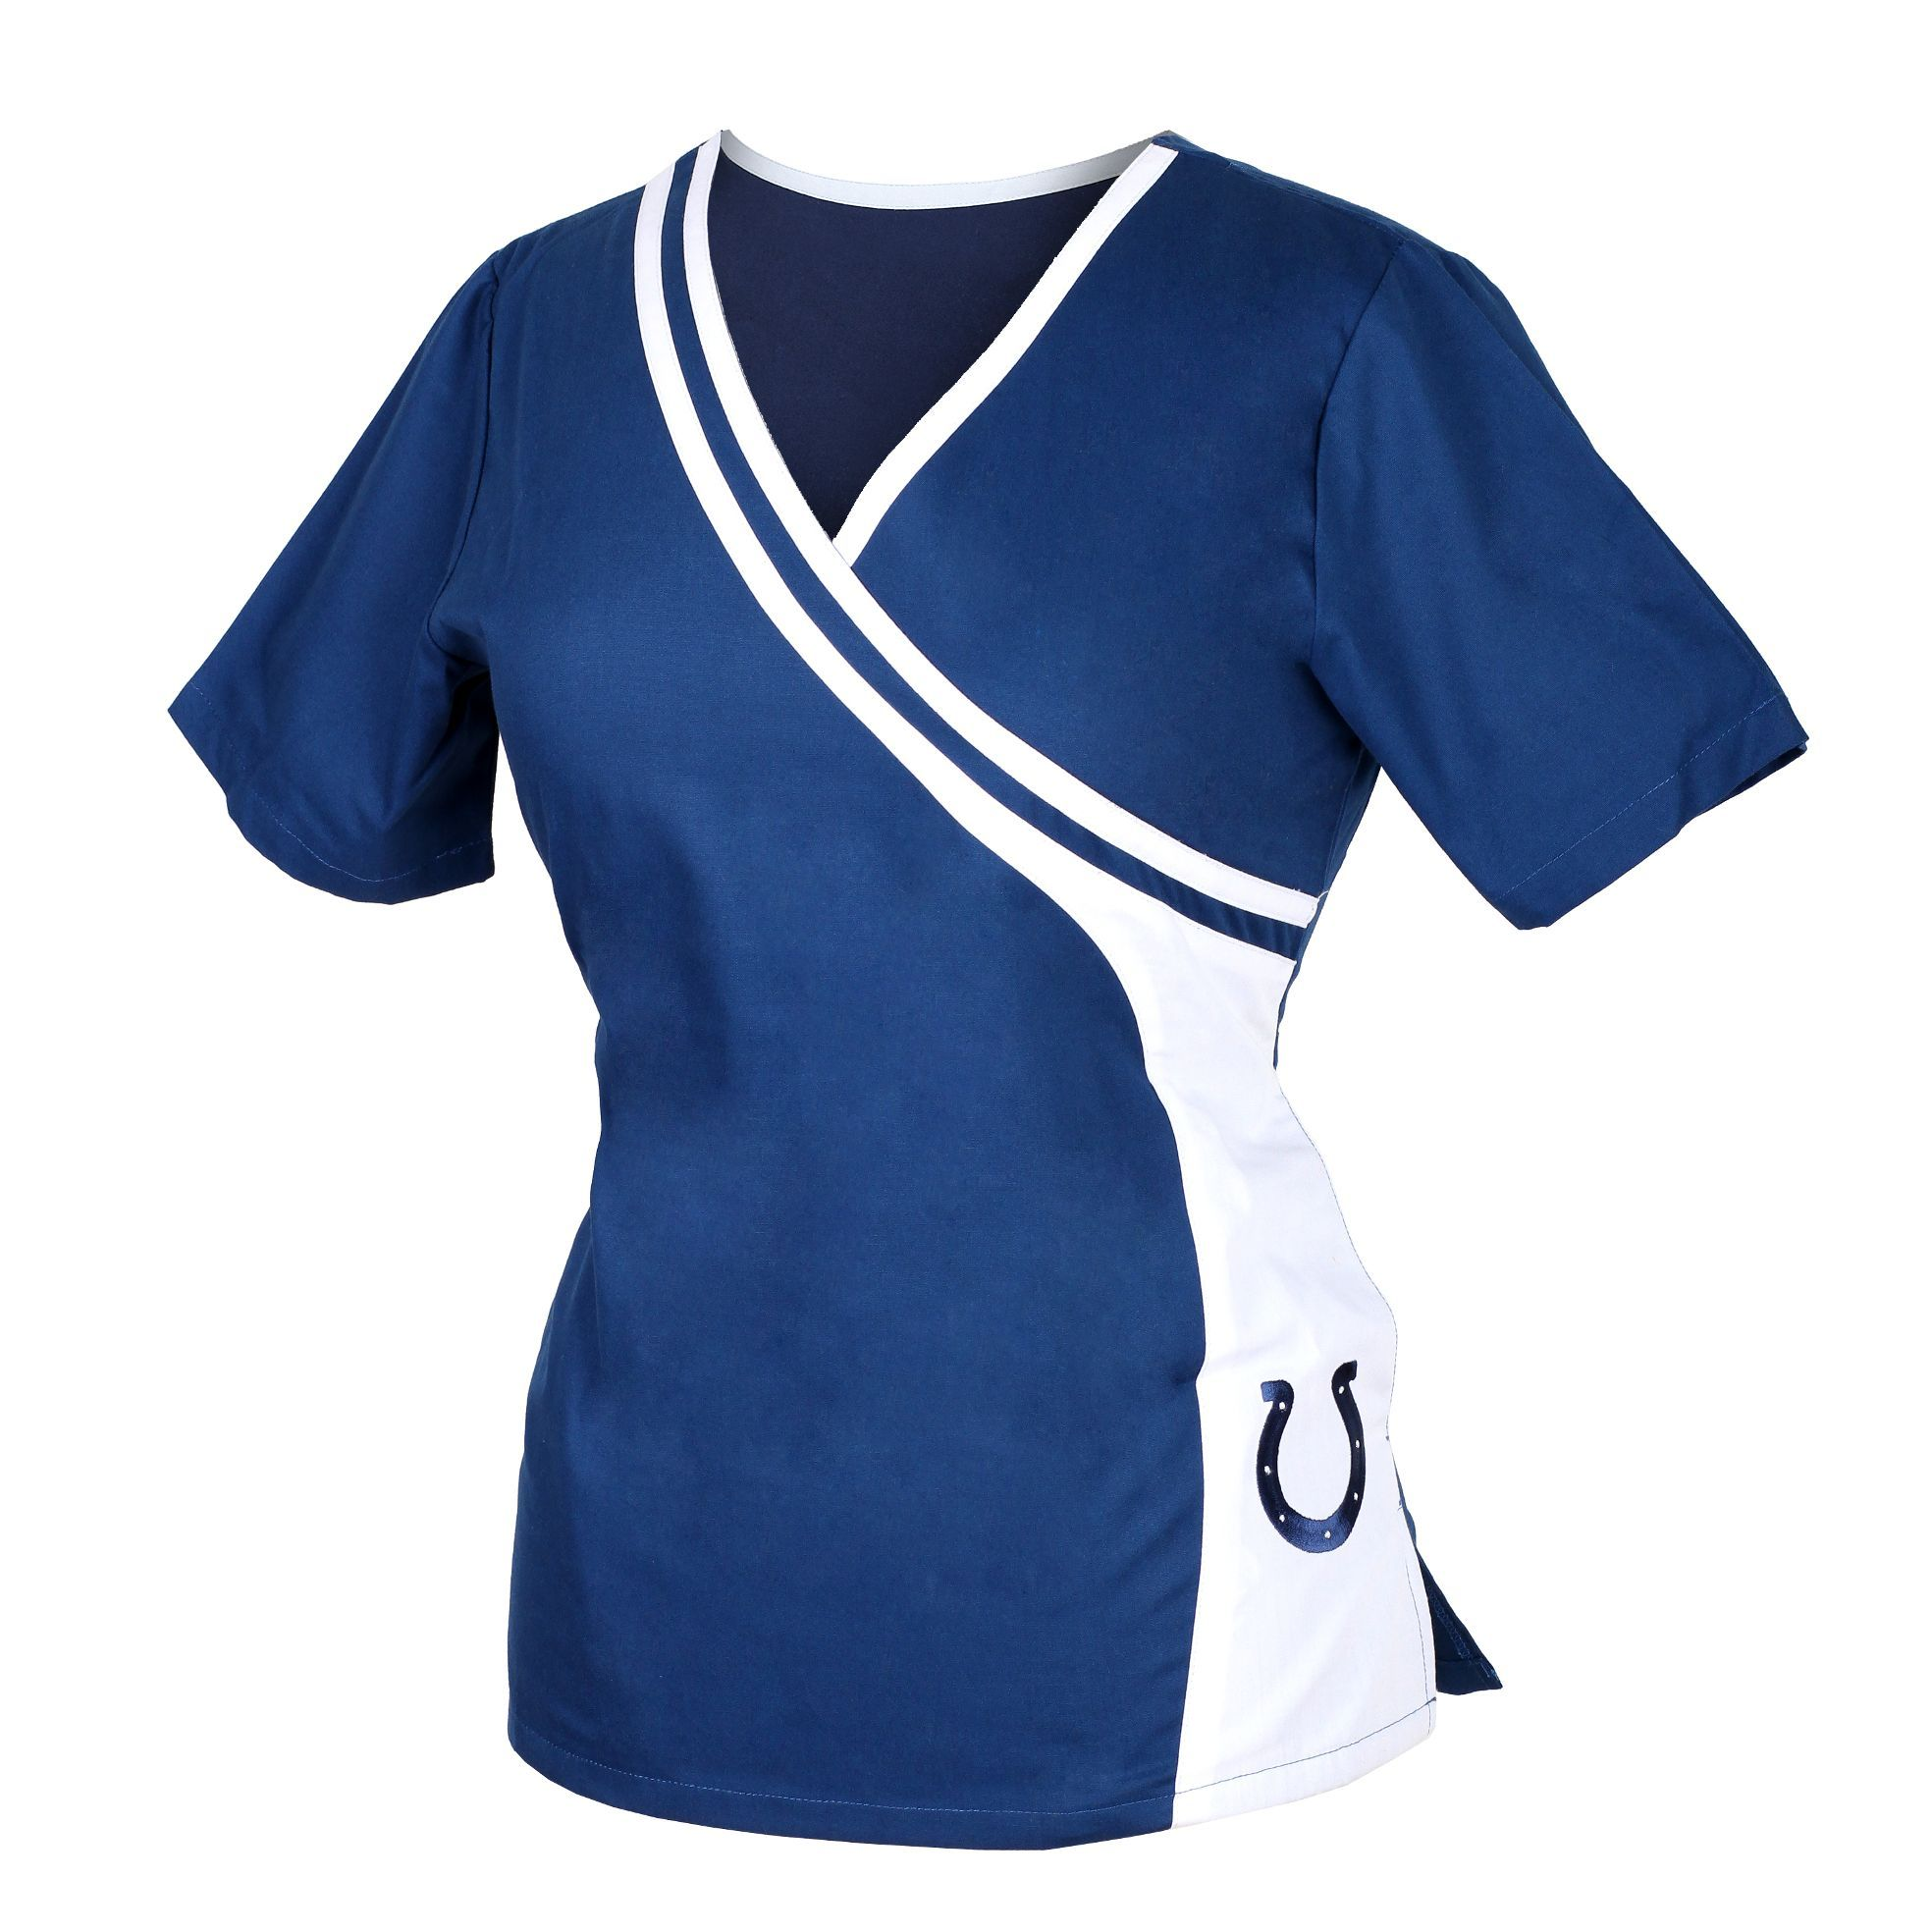 Shop our high quality Indianapolis Colts NFL embroidered scrubs today!